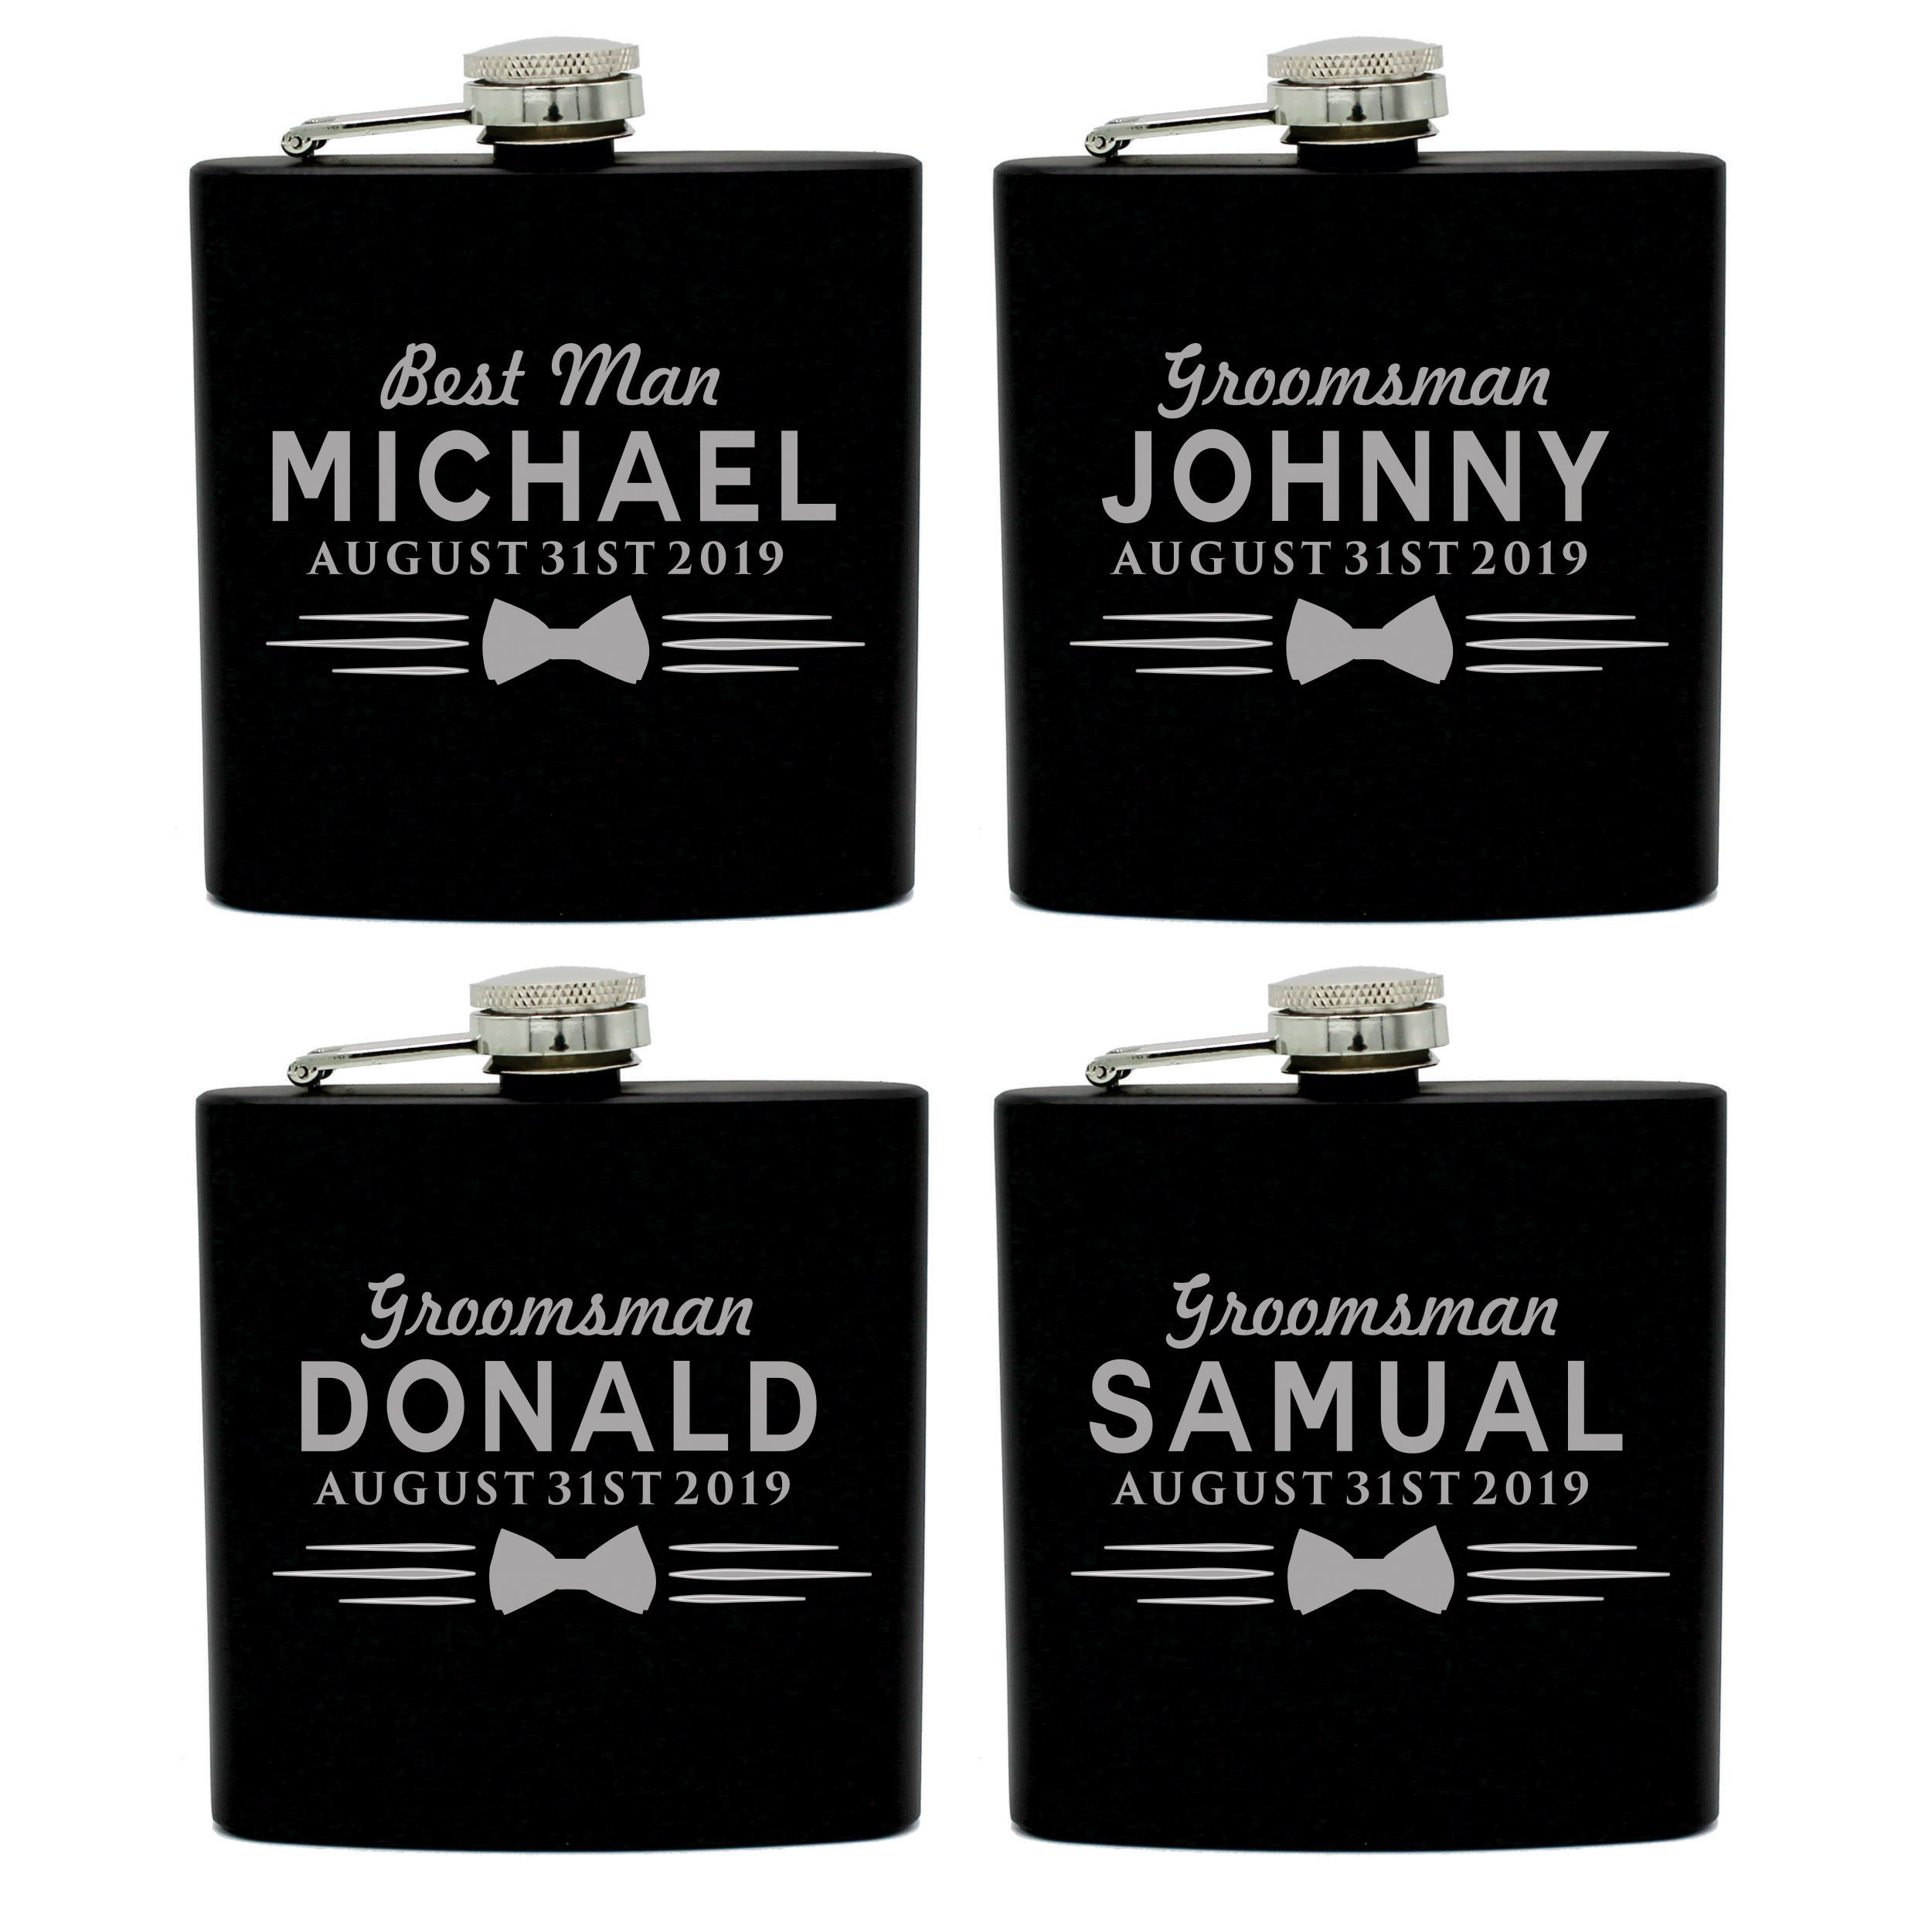 Set of 4, Set of 7 and more Custom Personalized Black Matte Flasks for Groomsmen Gifts - Uniform Style (4) by My Personal Memories